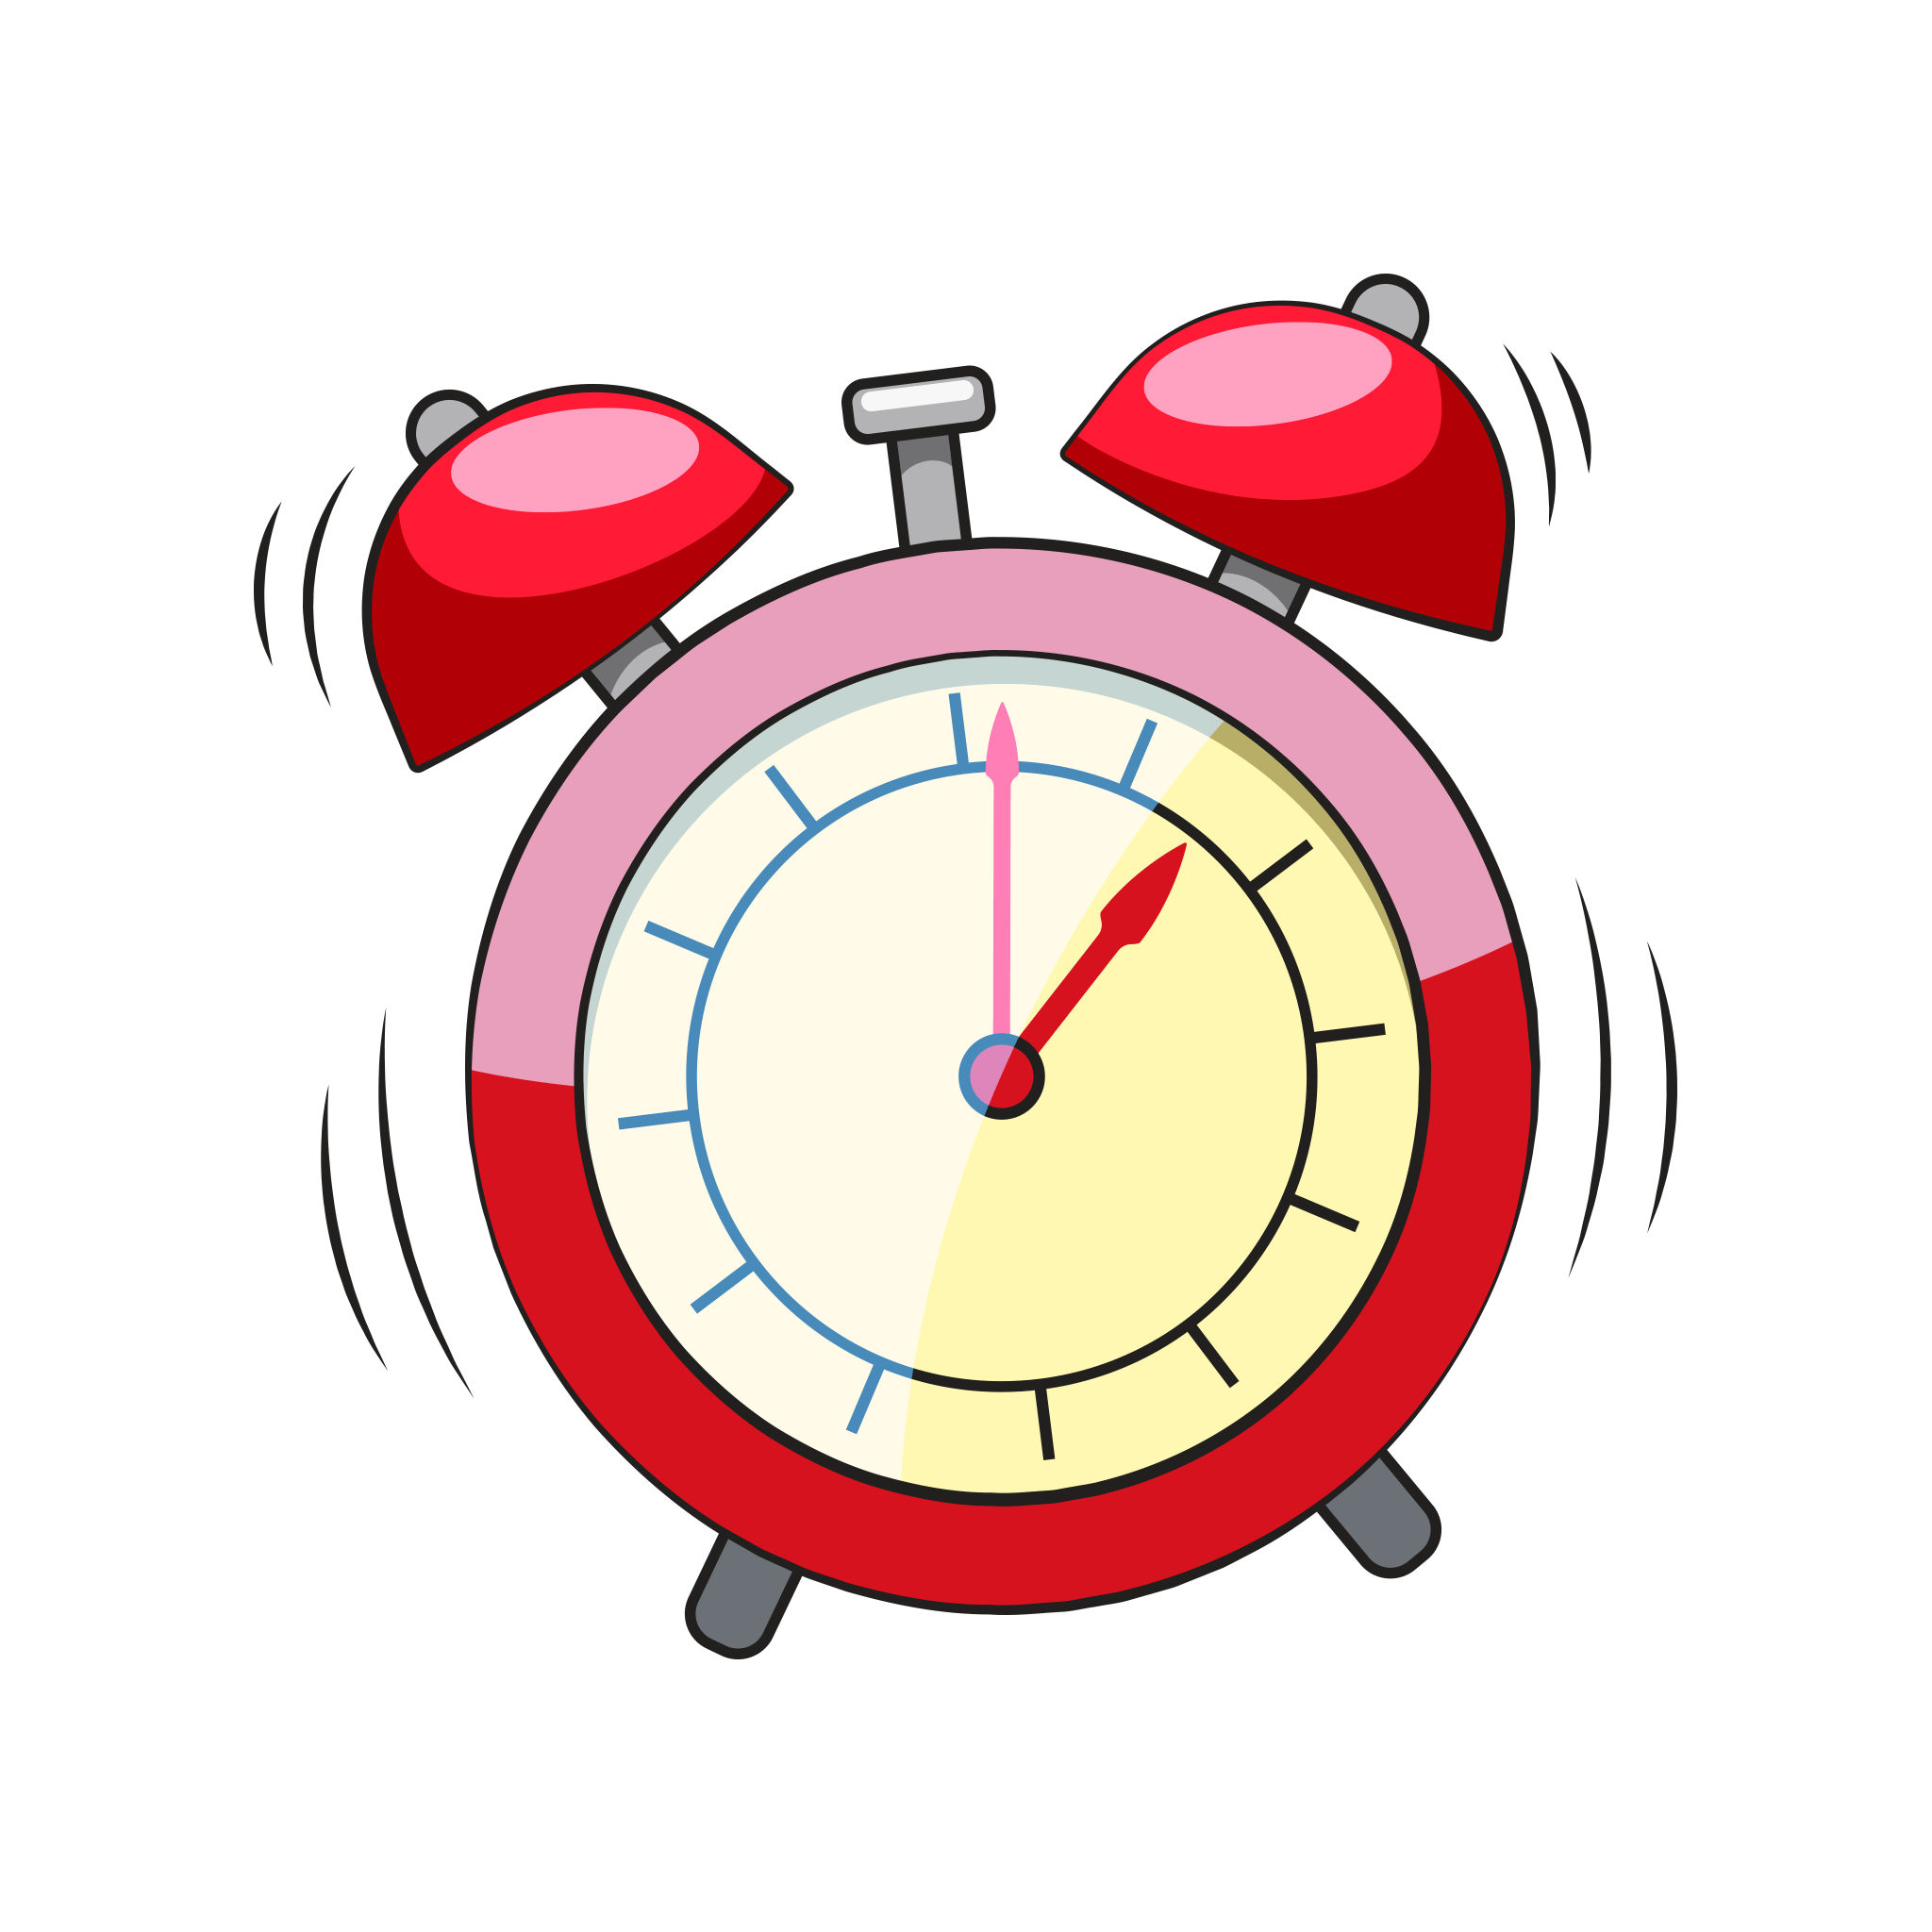 Alarm Clock Clipart PNG Image Free Downl #805019.